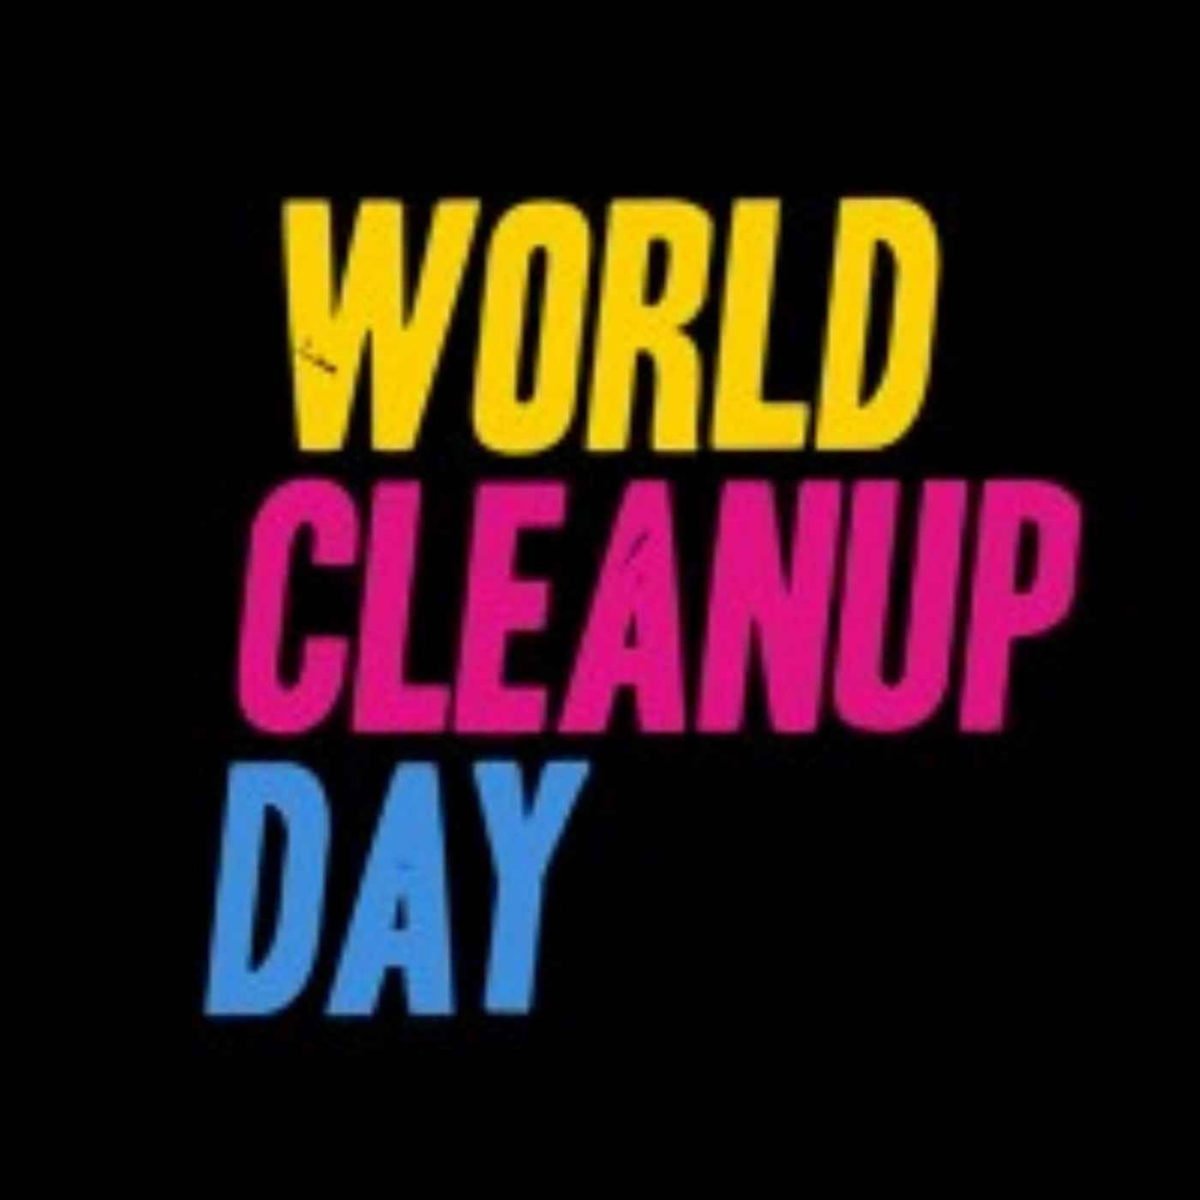 What is World Cleanup Day?